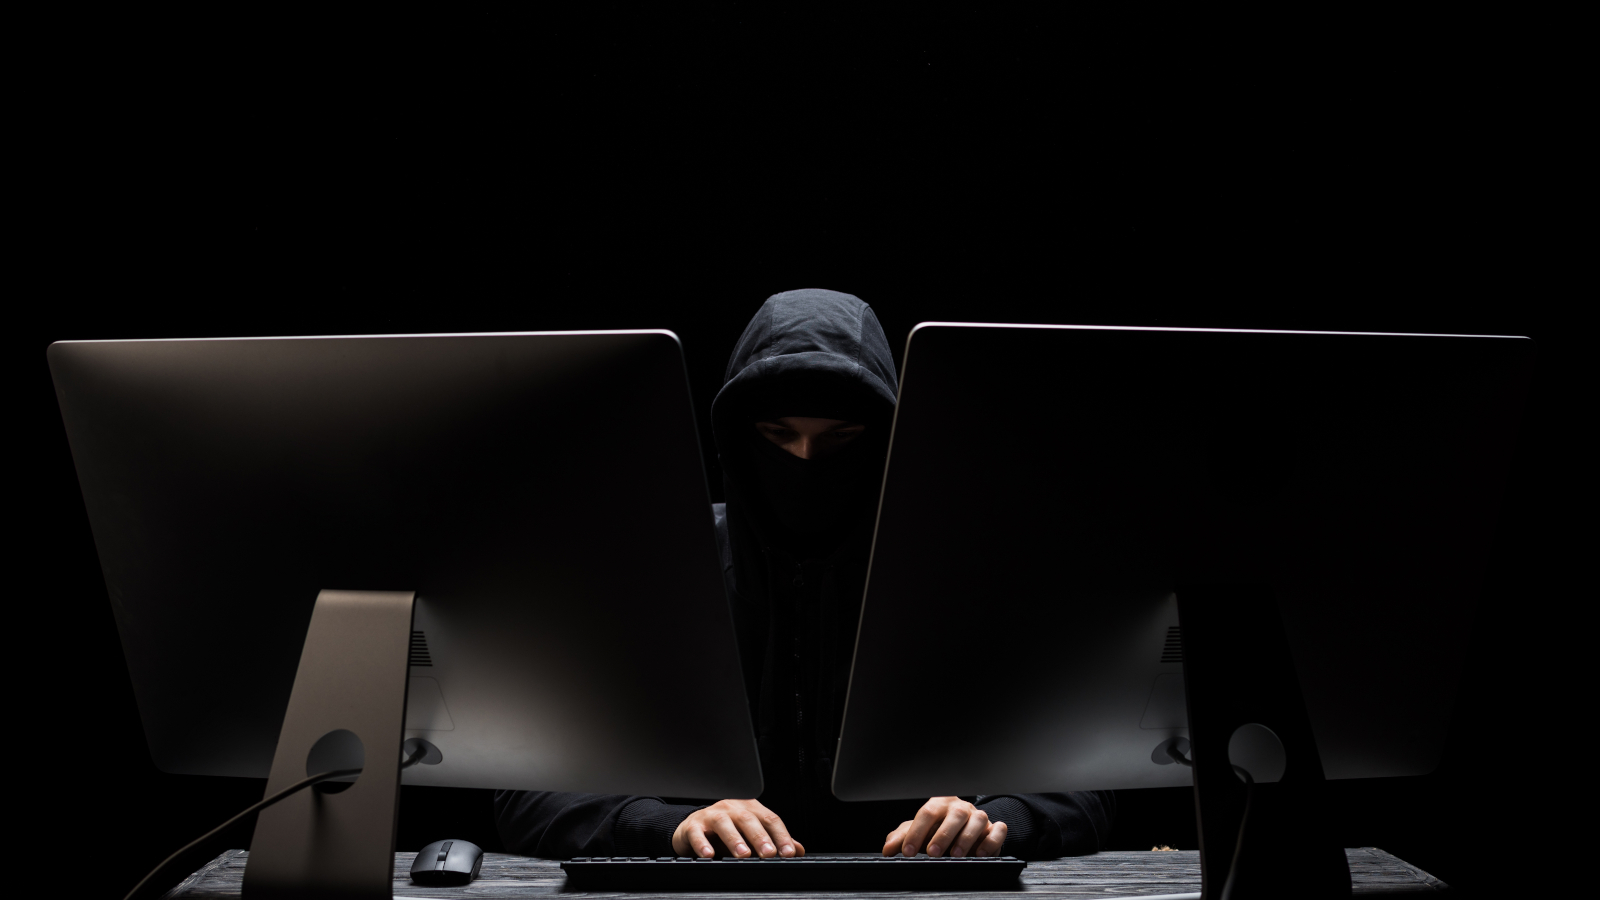 Covid 19 Has Seriously Disrupted Dark Web Operations And Markets